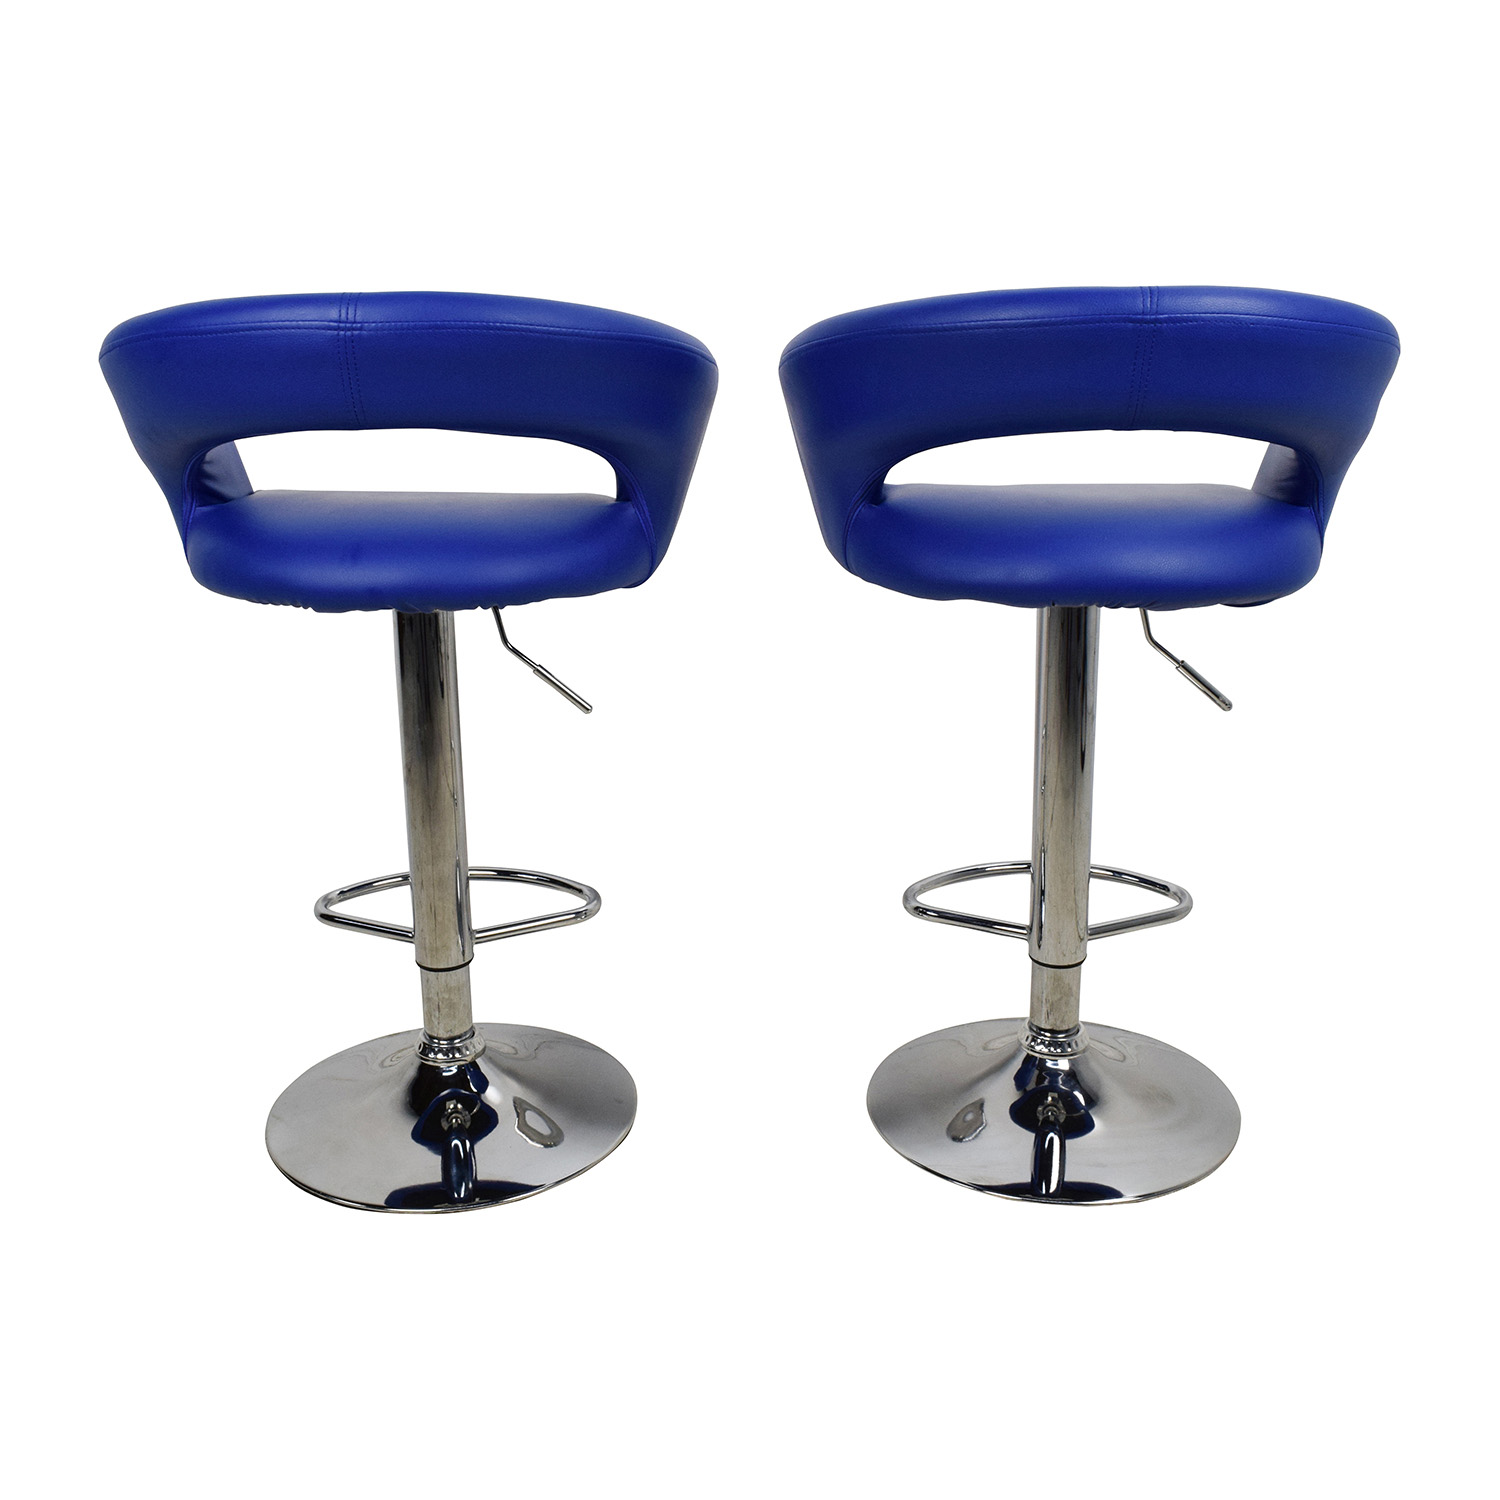 all modern chairs desk chair alternatives 79 off blue leather adjustable